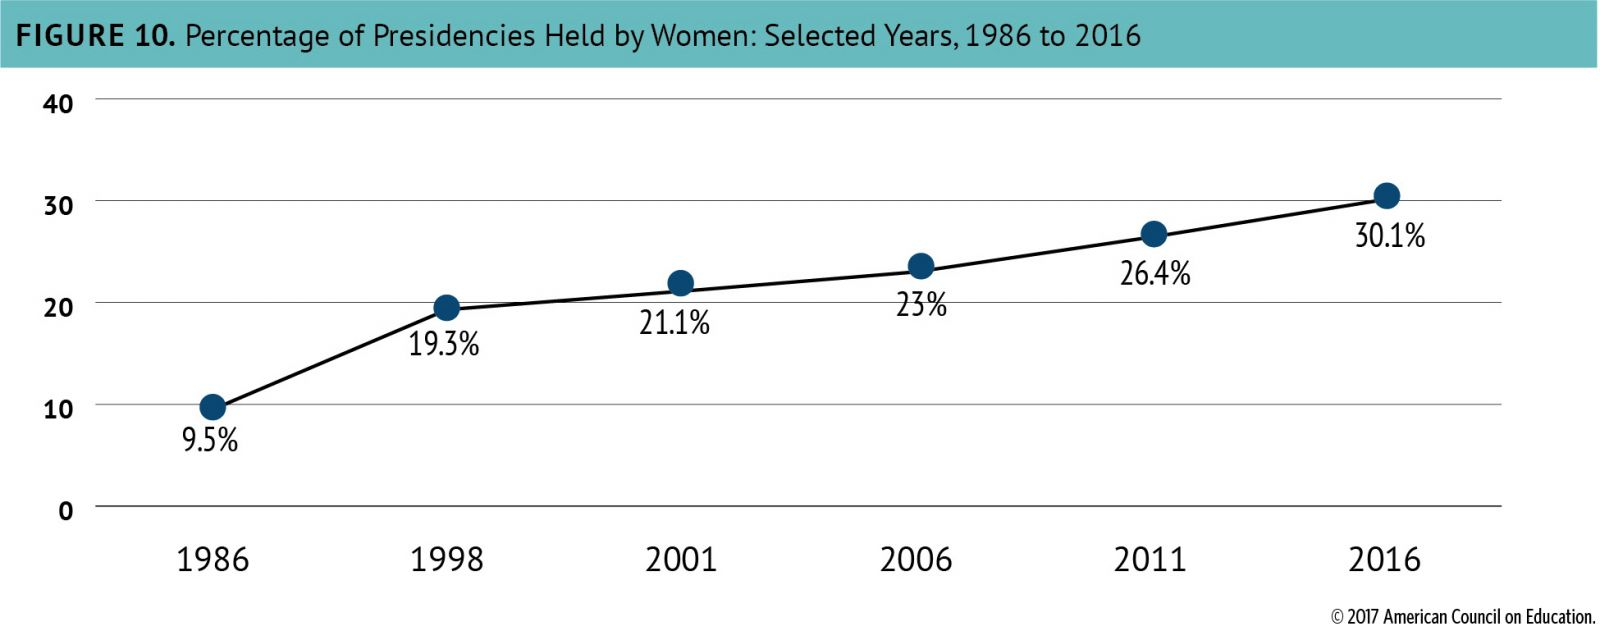 Chart: Percentage of Presidencies Held by Women, Selected Years 1986 to 2016.